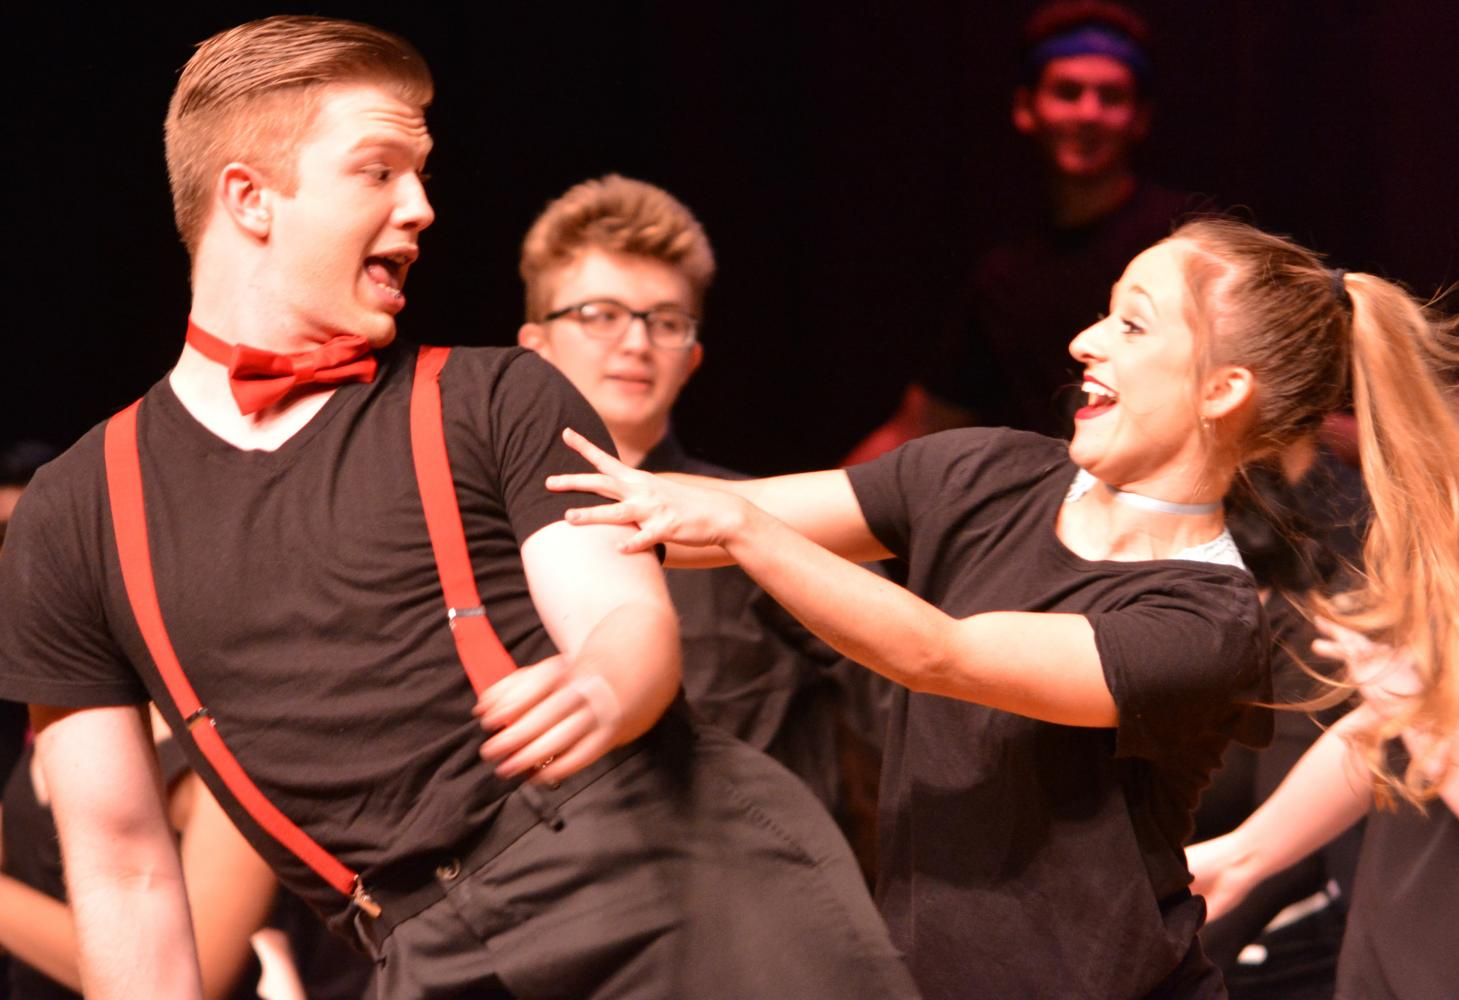 Austin Moon and Megan Bishop dancing at Southern Exposure. Photo by Alyssa Meyer.